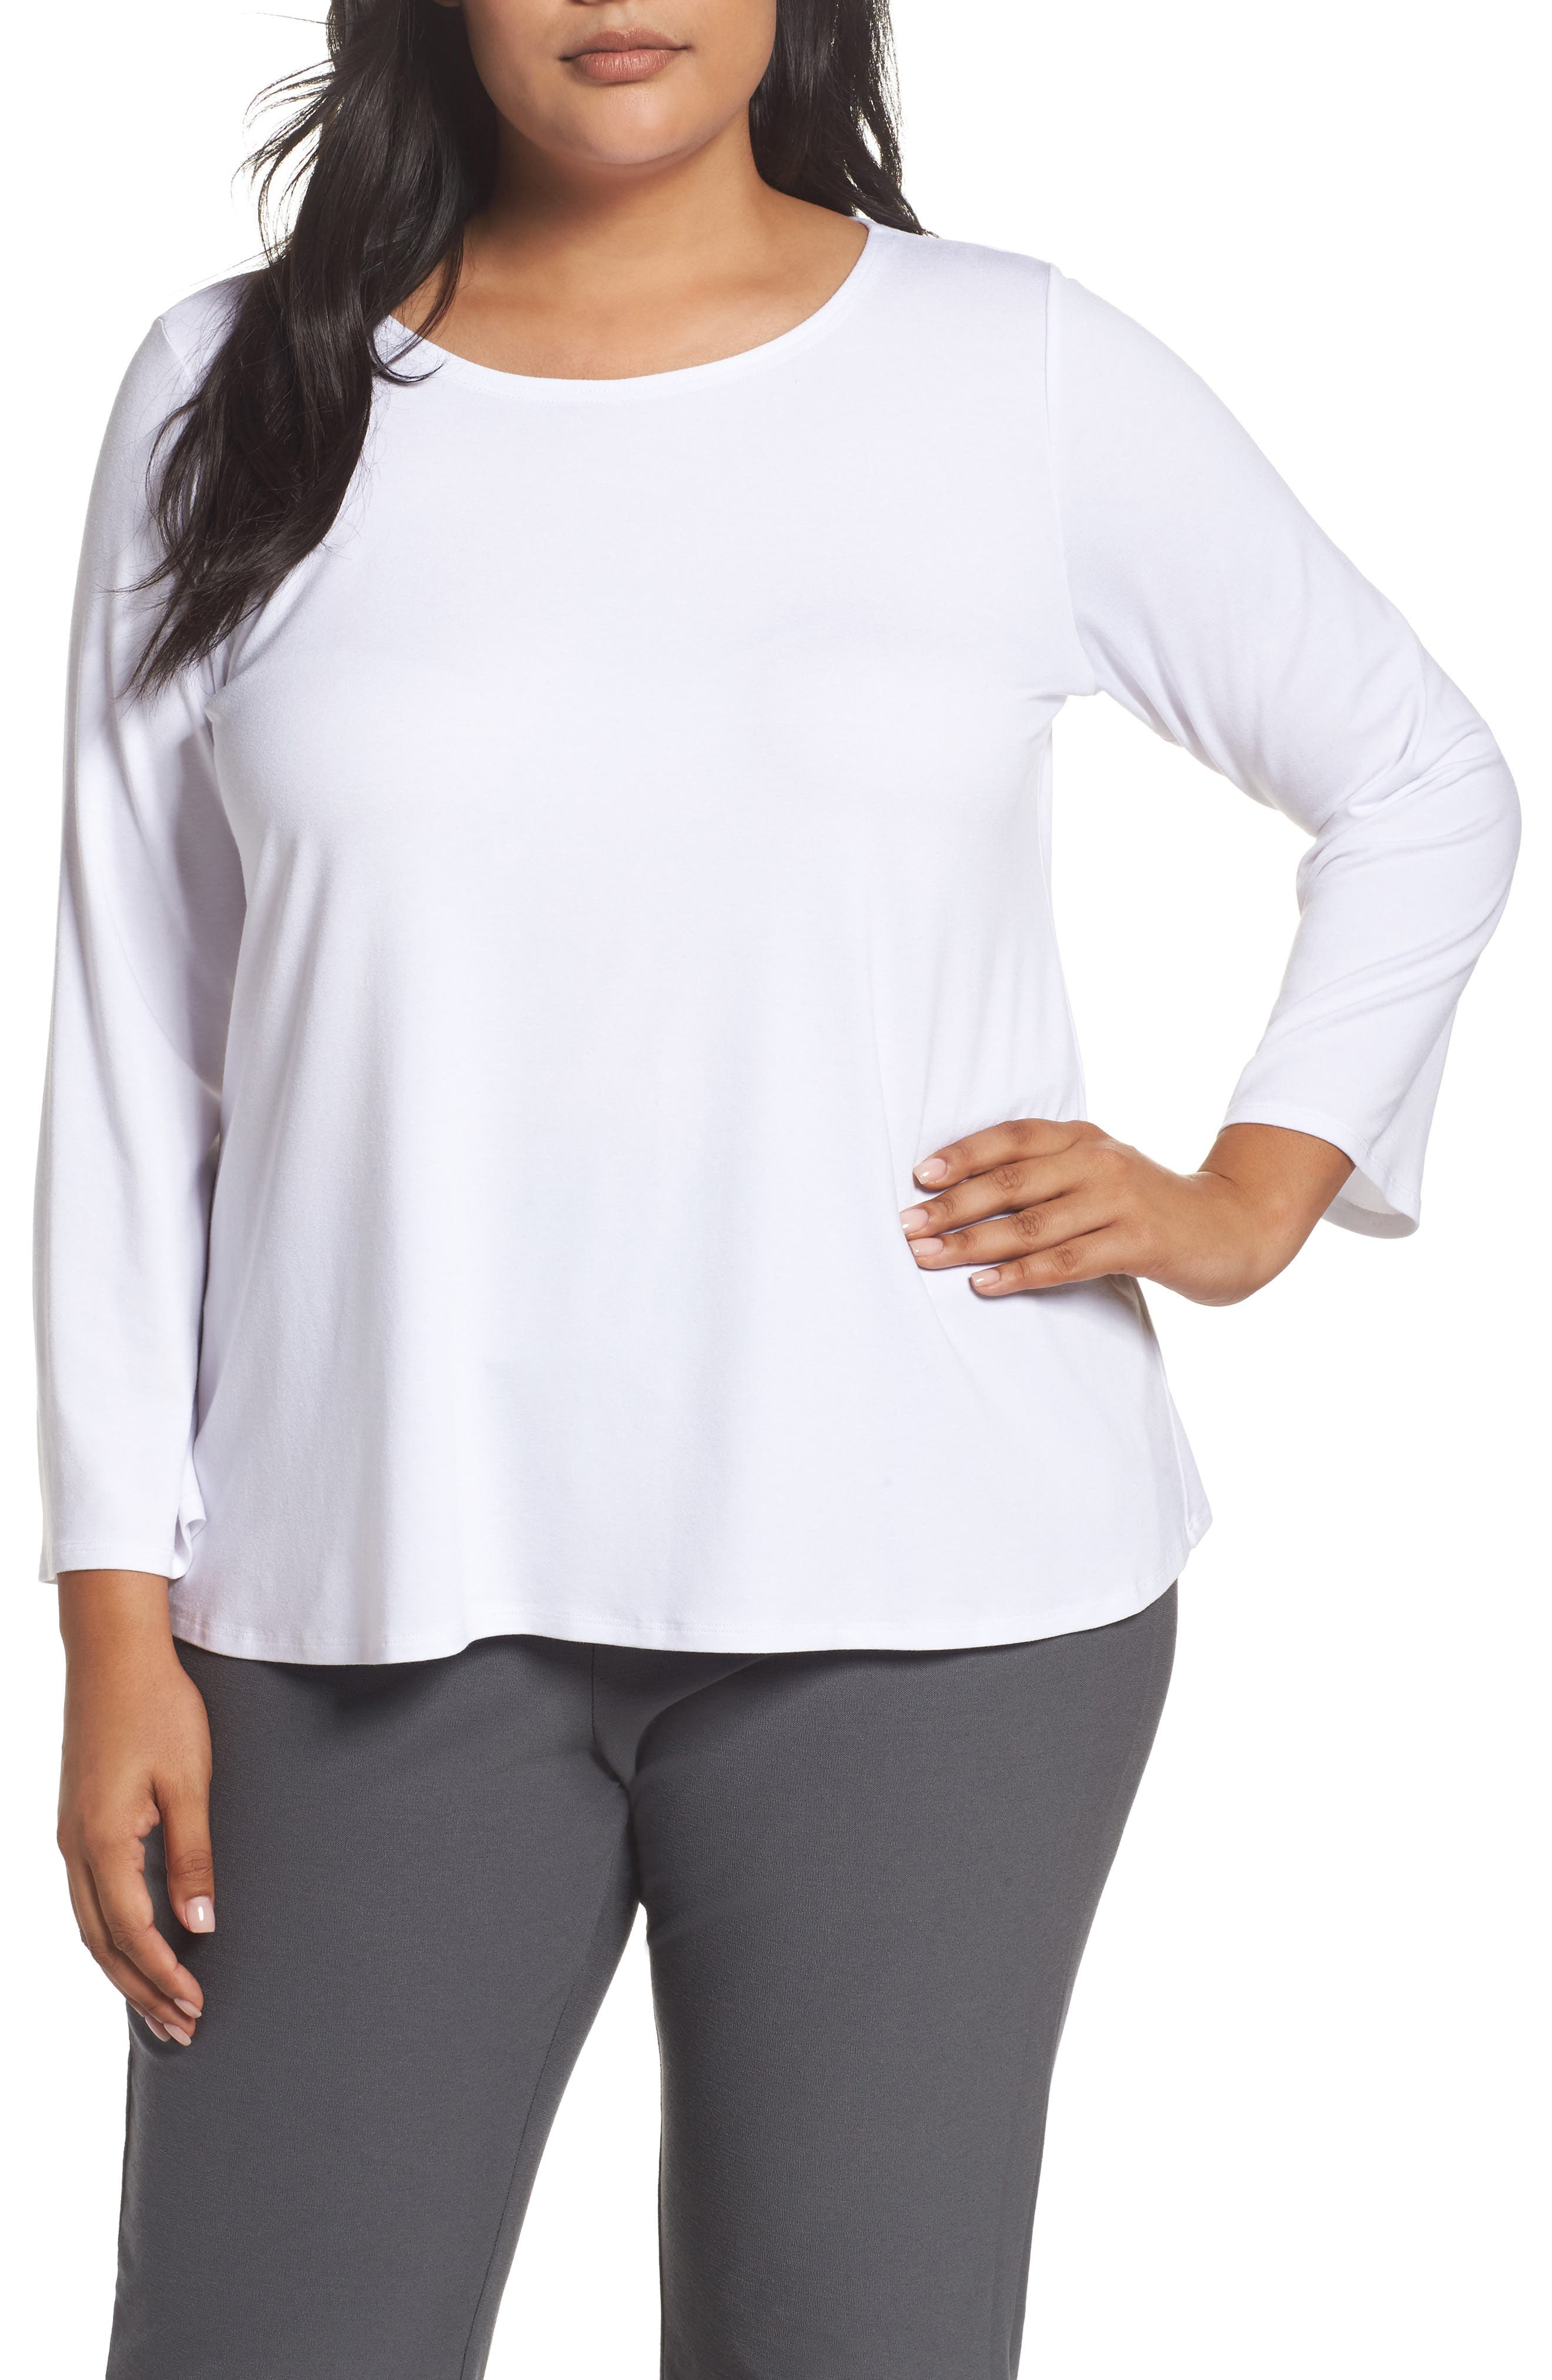 Alternate Image 1 Selected - Eileen Fisher Jersey Ballet Neck Top (Plus Size)